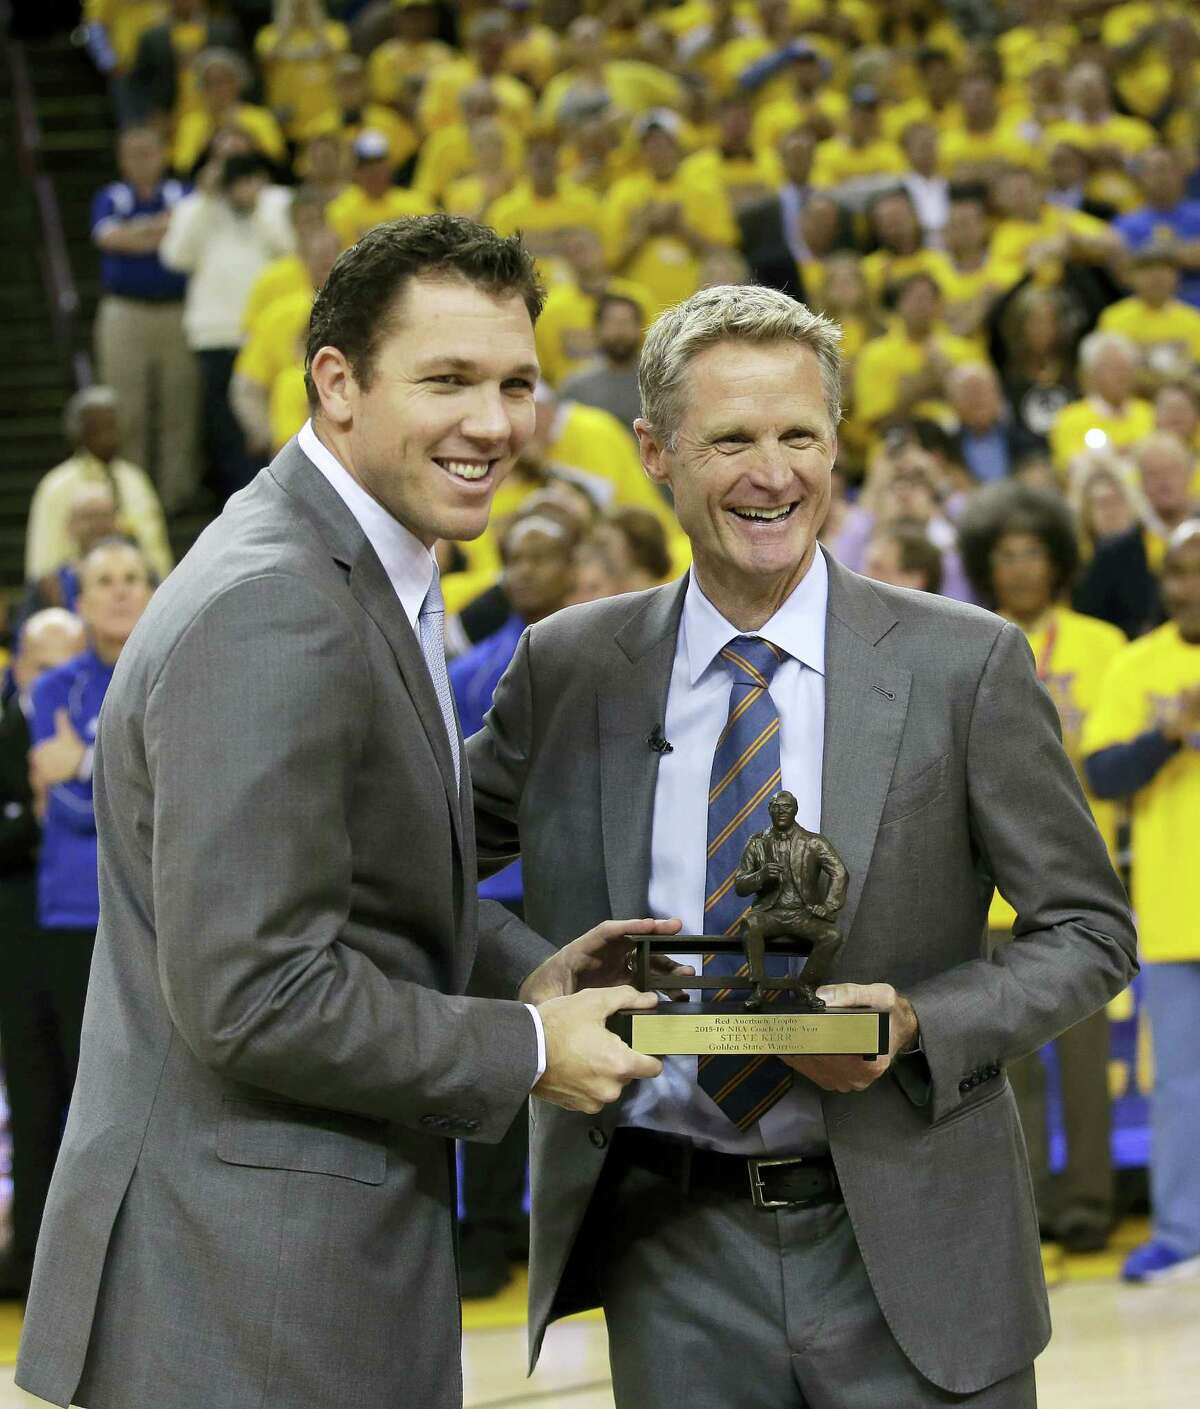 Golden State Warriors head coach Steve Kerr, right, poses for a photo with the league's coach of the year trophy alongside assistant coach Luke Walton.